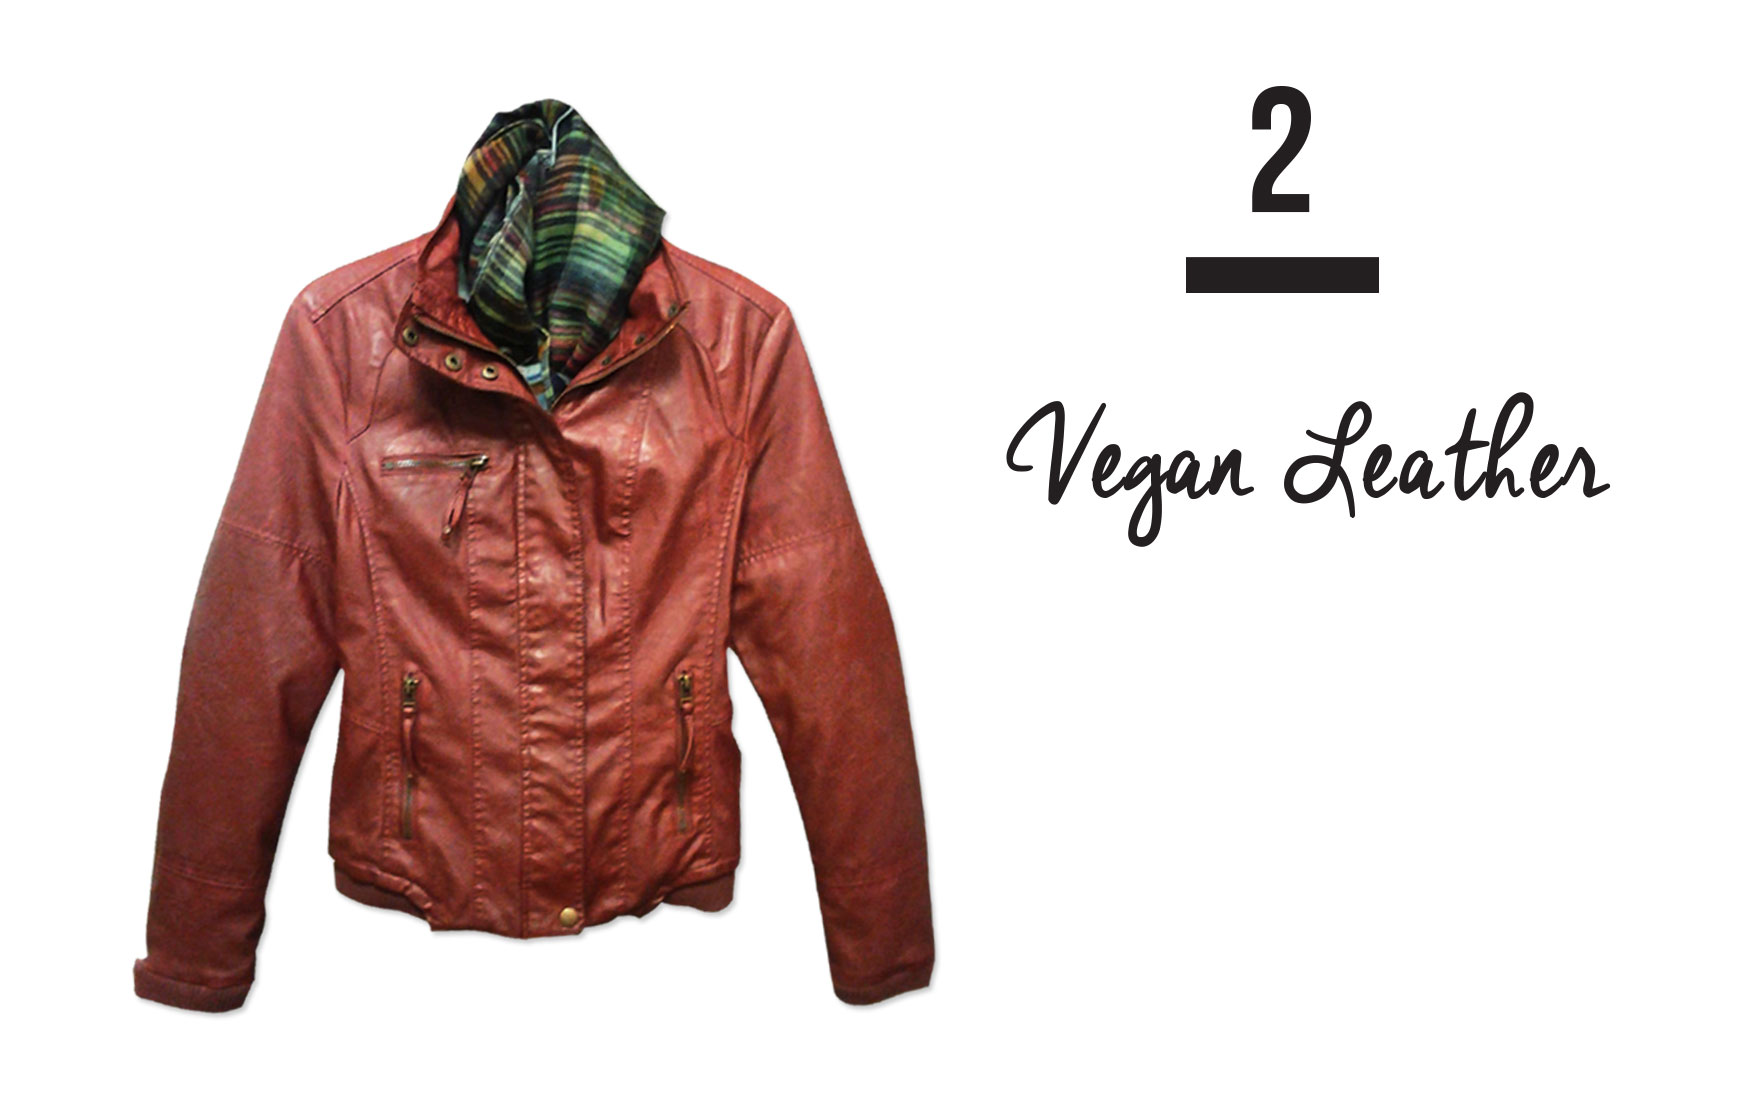 VEGAN LEATHER Mountain Co. red vegan leather jacket is fleece lined and gives you the extra warmth for the cool evenings ahead. Stop in to see the many styles and colors available.